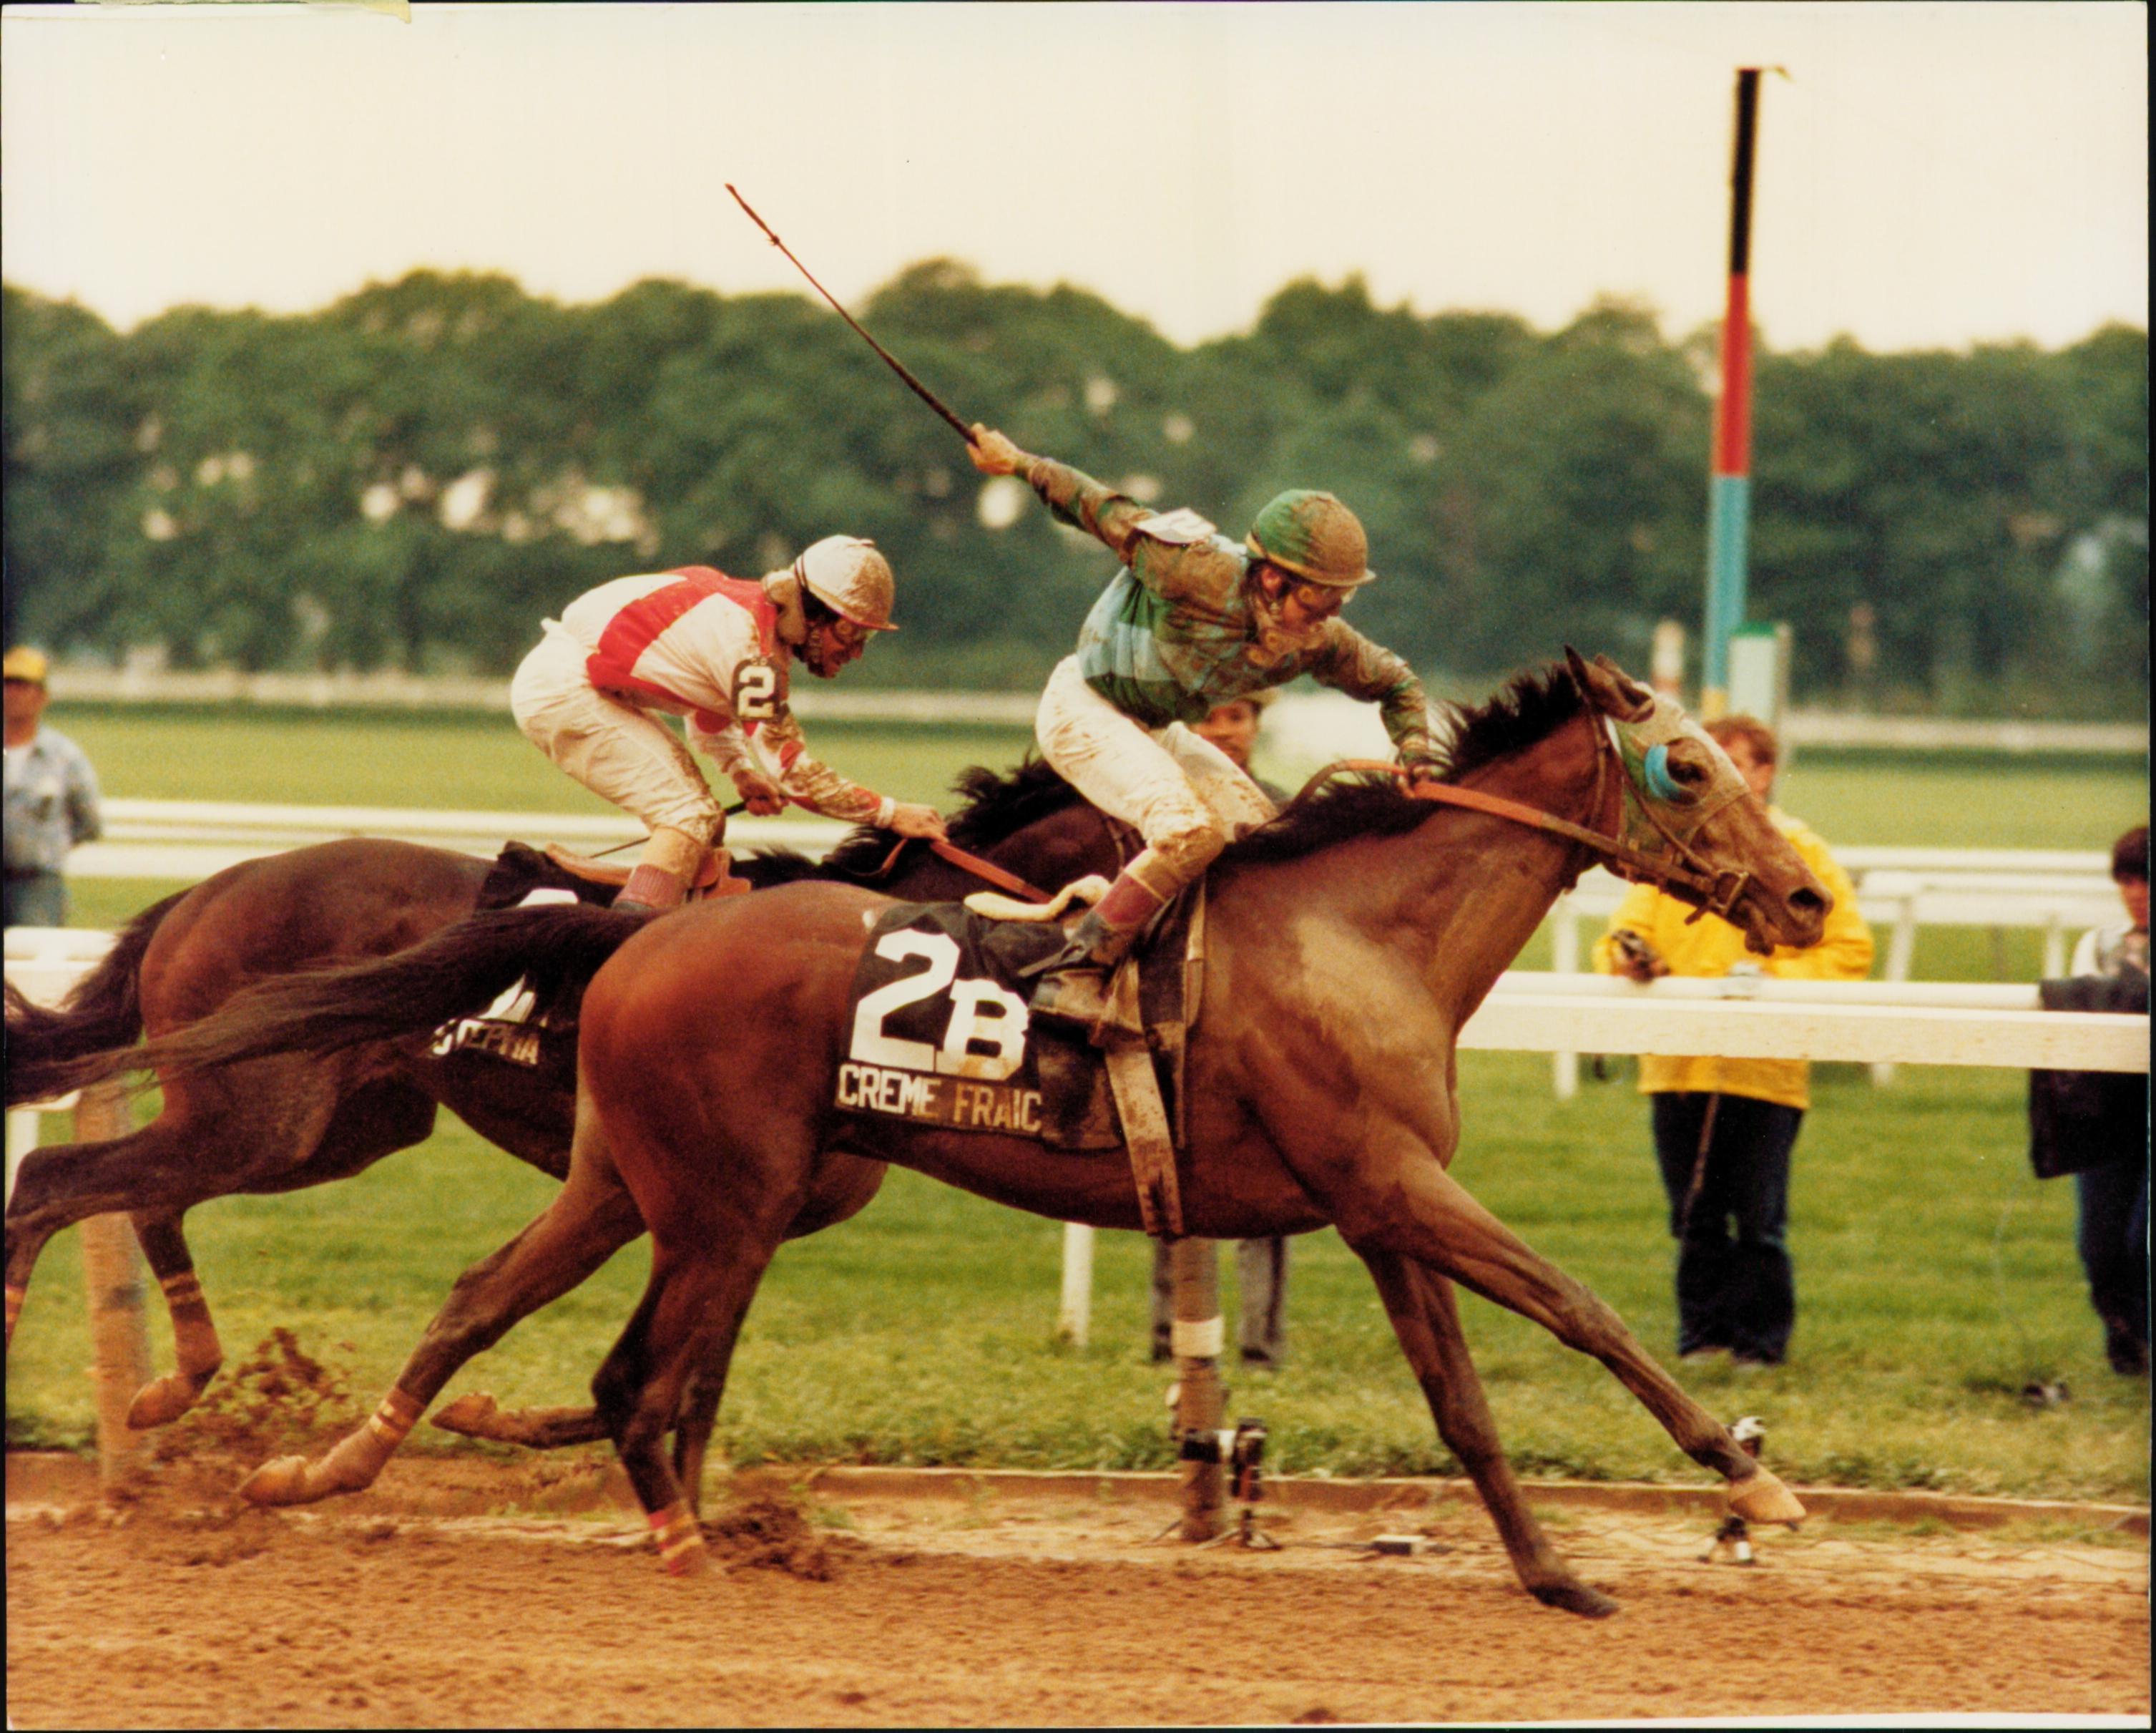 Maple and Creme Fraiche win the 1985 Belmont Stakes.